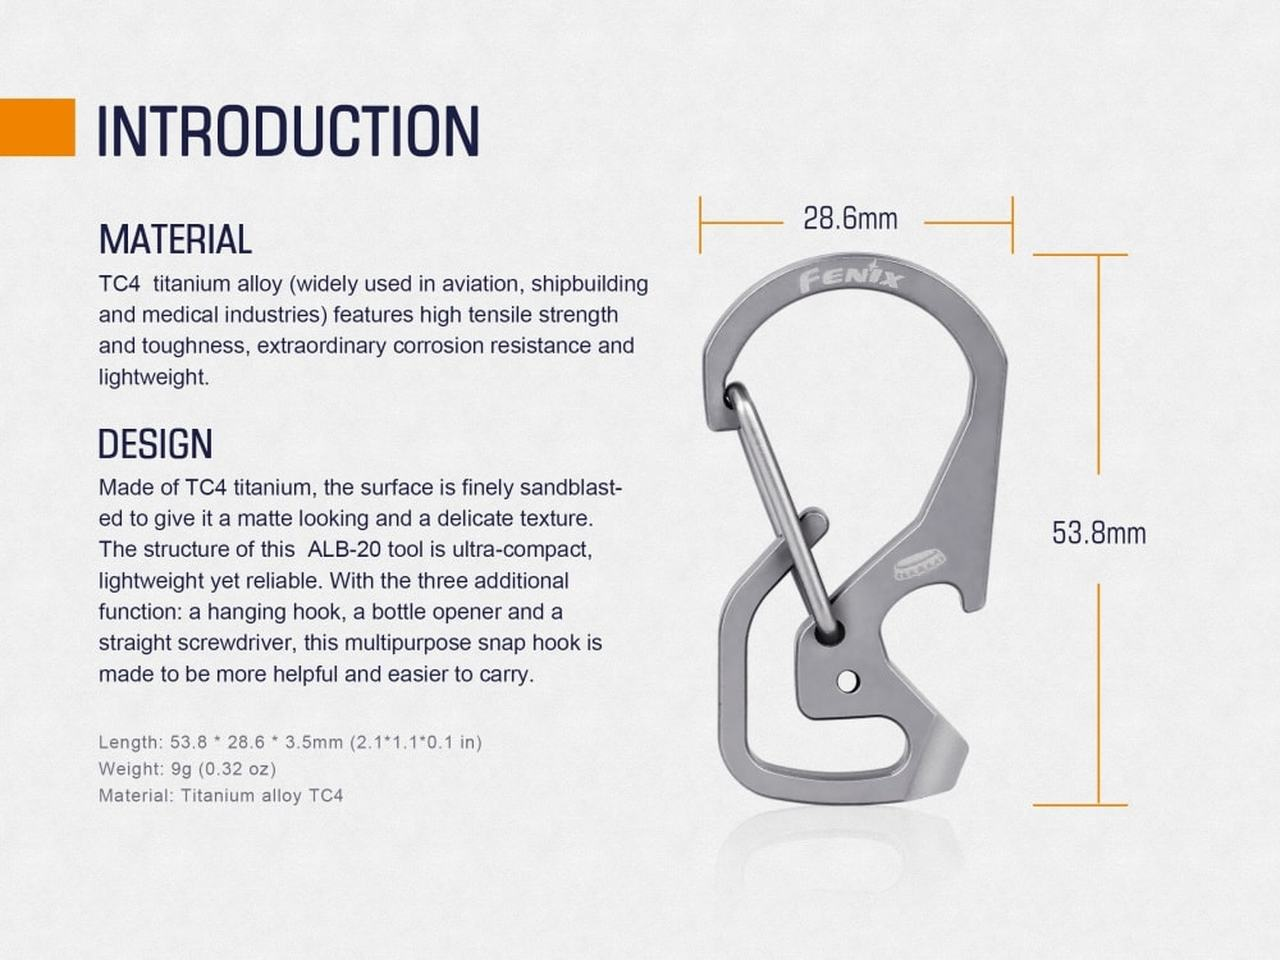 Fenix ALB-20 Multi-Purpose Snap Hook